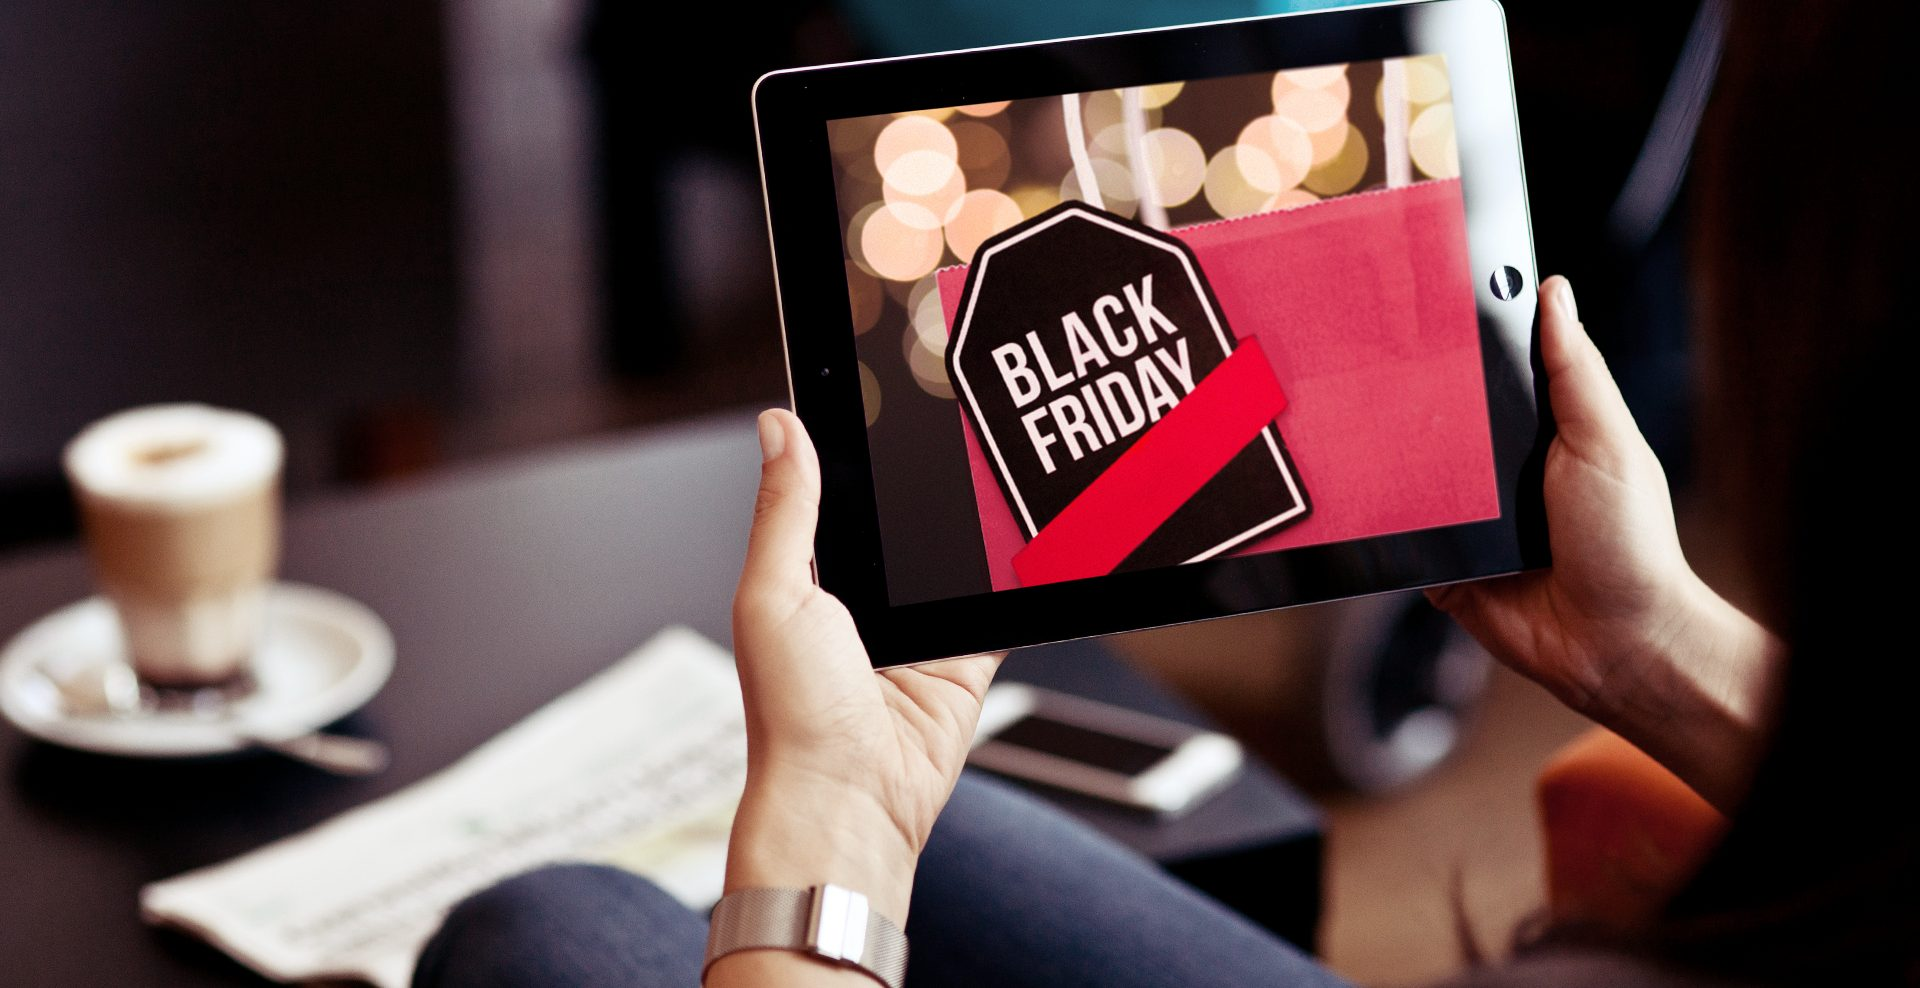 A person using a tablet to look at Black Friday deals.